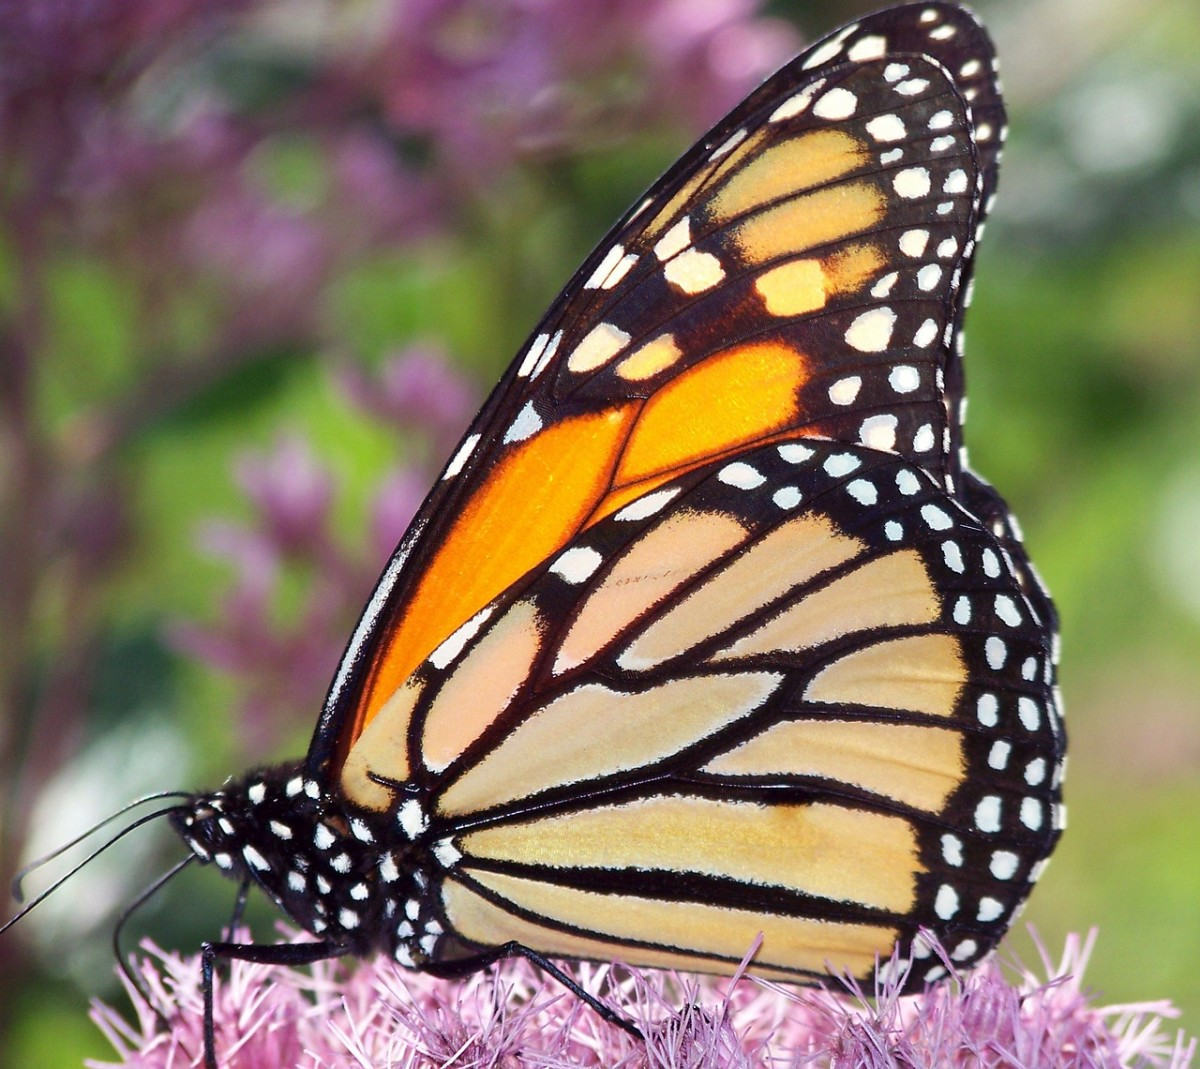 Butterfly Identification Guide: 26 Types of Butterflies (With Photos)